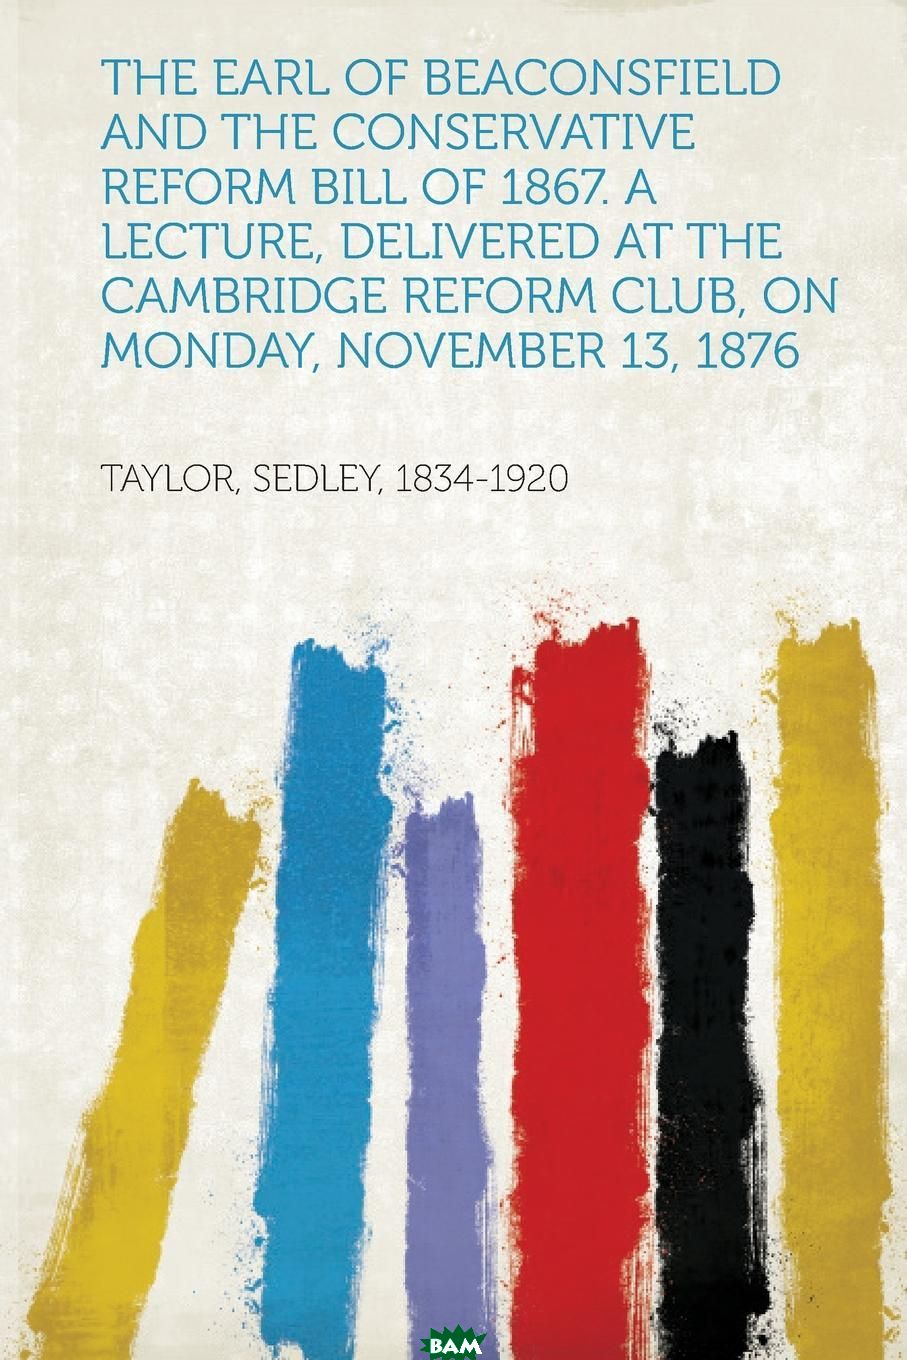 Купить The Earl of Beaconsfield and the Conservative Reform Bill of 1867. a Lecture, Delivered at the Cambridge Reform Club, on Monday, November 13, 1876, Taylor Sedley 1834-1920, 9781313968324